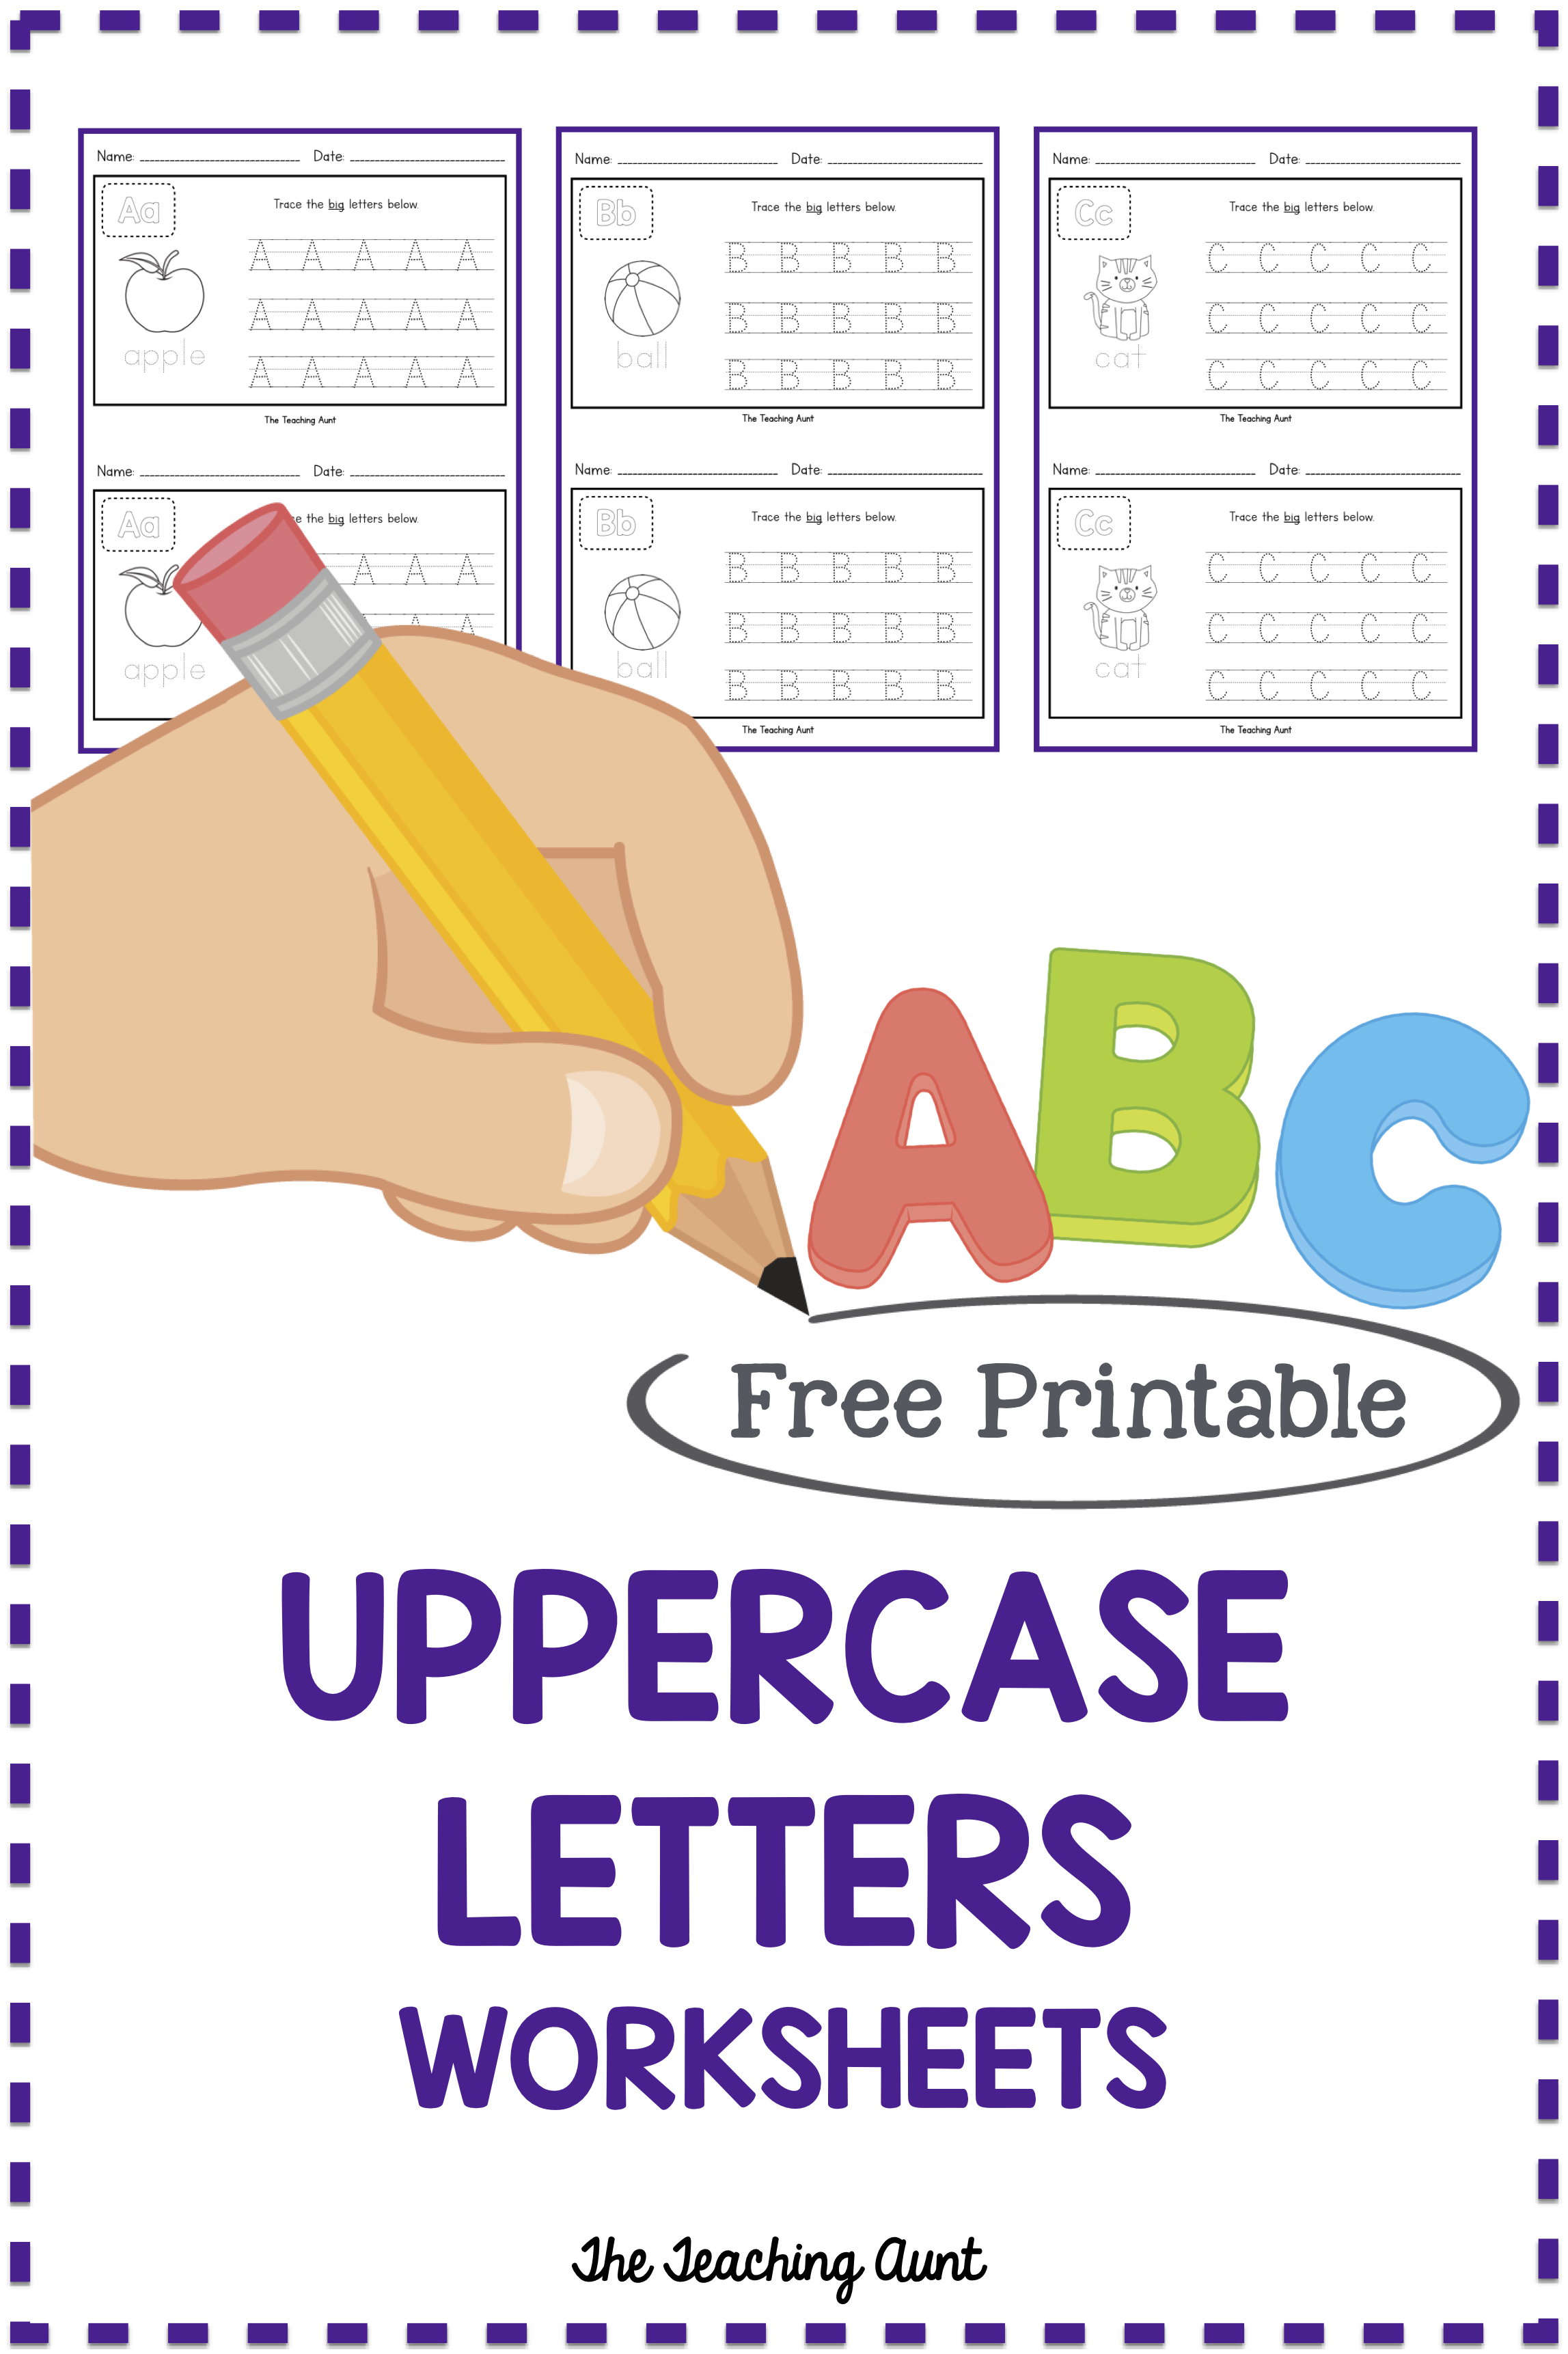 Uppercase Letters Tracing Worksheets Set 2 The Teaching Aunt Letter Worksheets For Preschool Classroom Writing Center Alphabet Letter Activities [ 3445 x 2295 Pixel ]